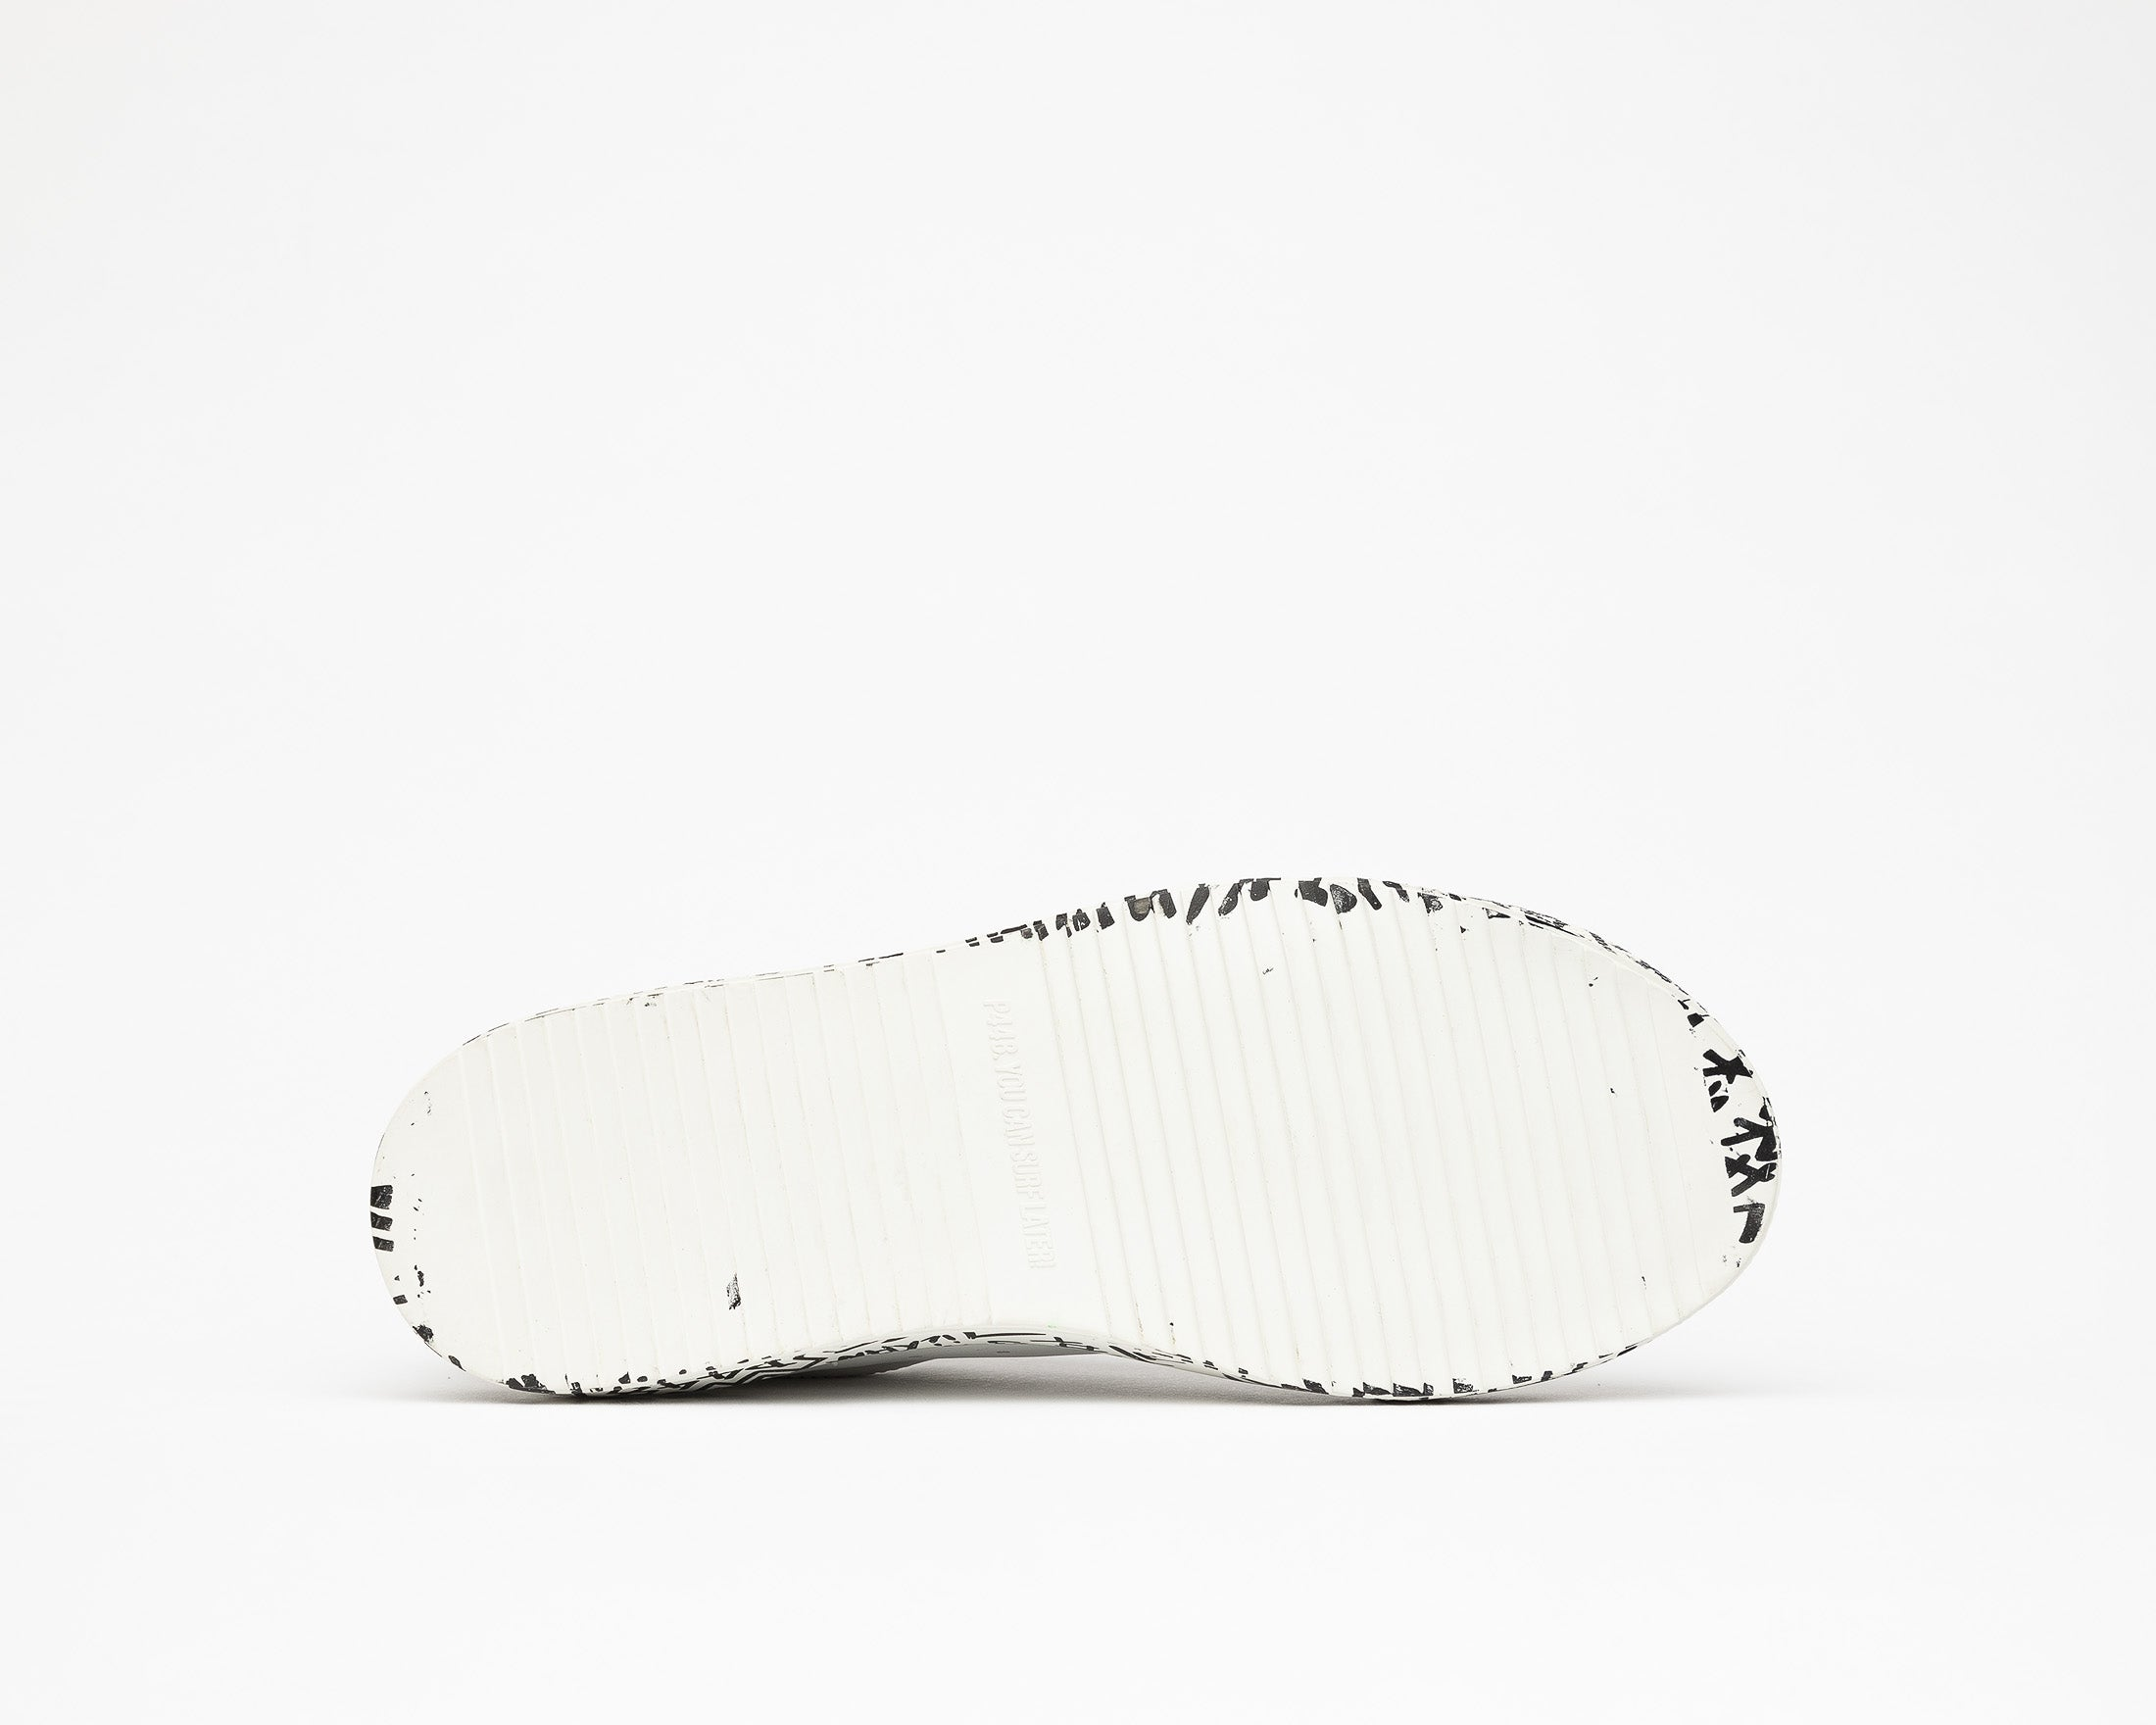 JohnP Low-Top Sneaker in White/P448 Sole - Bottom